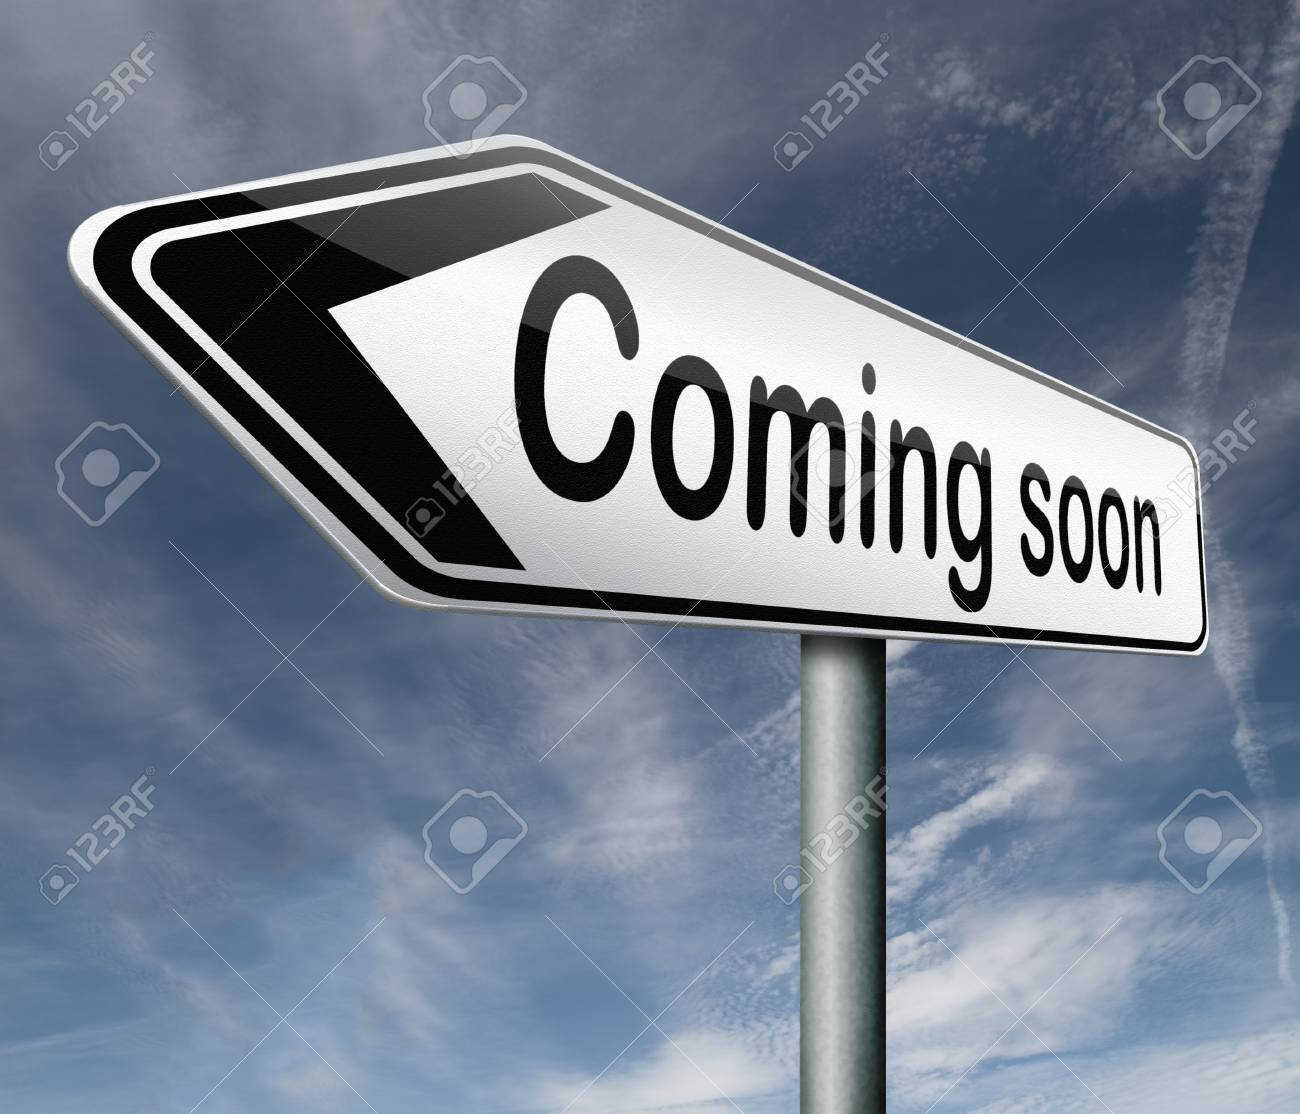 coming soon expecting in the near future next week month or year Stock Photo - 16821429